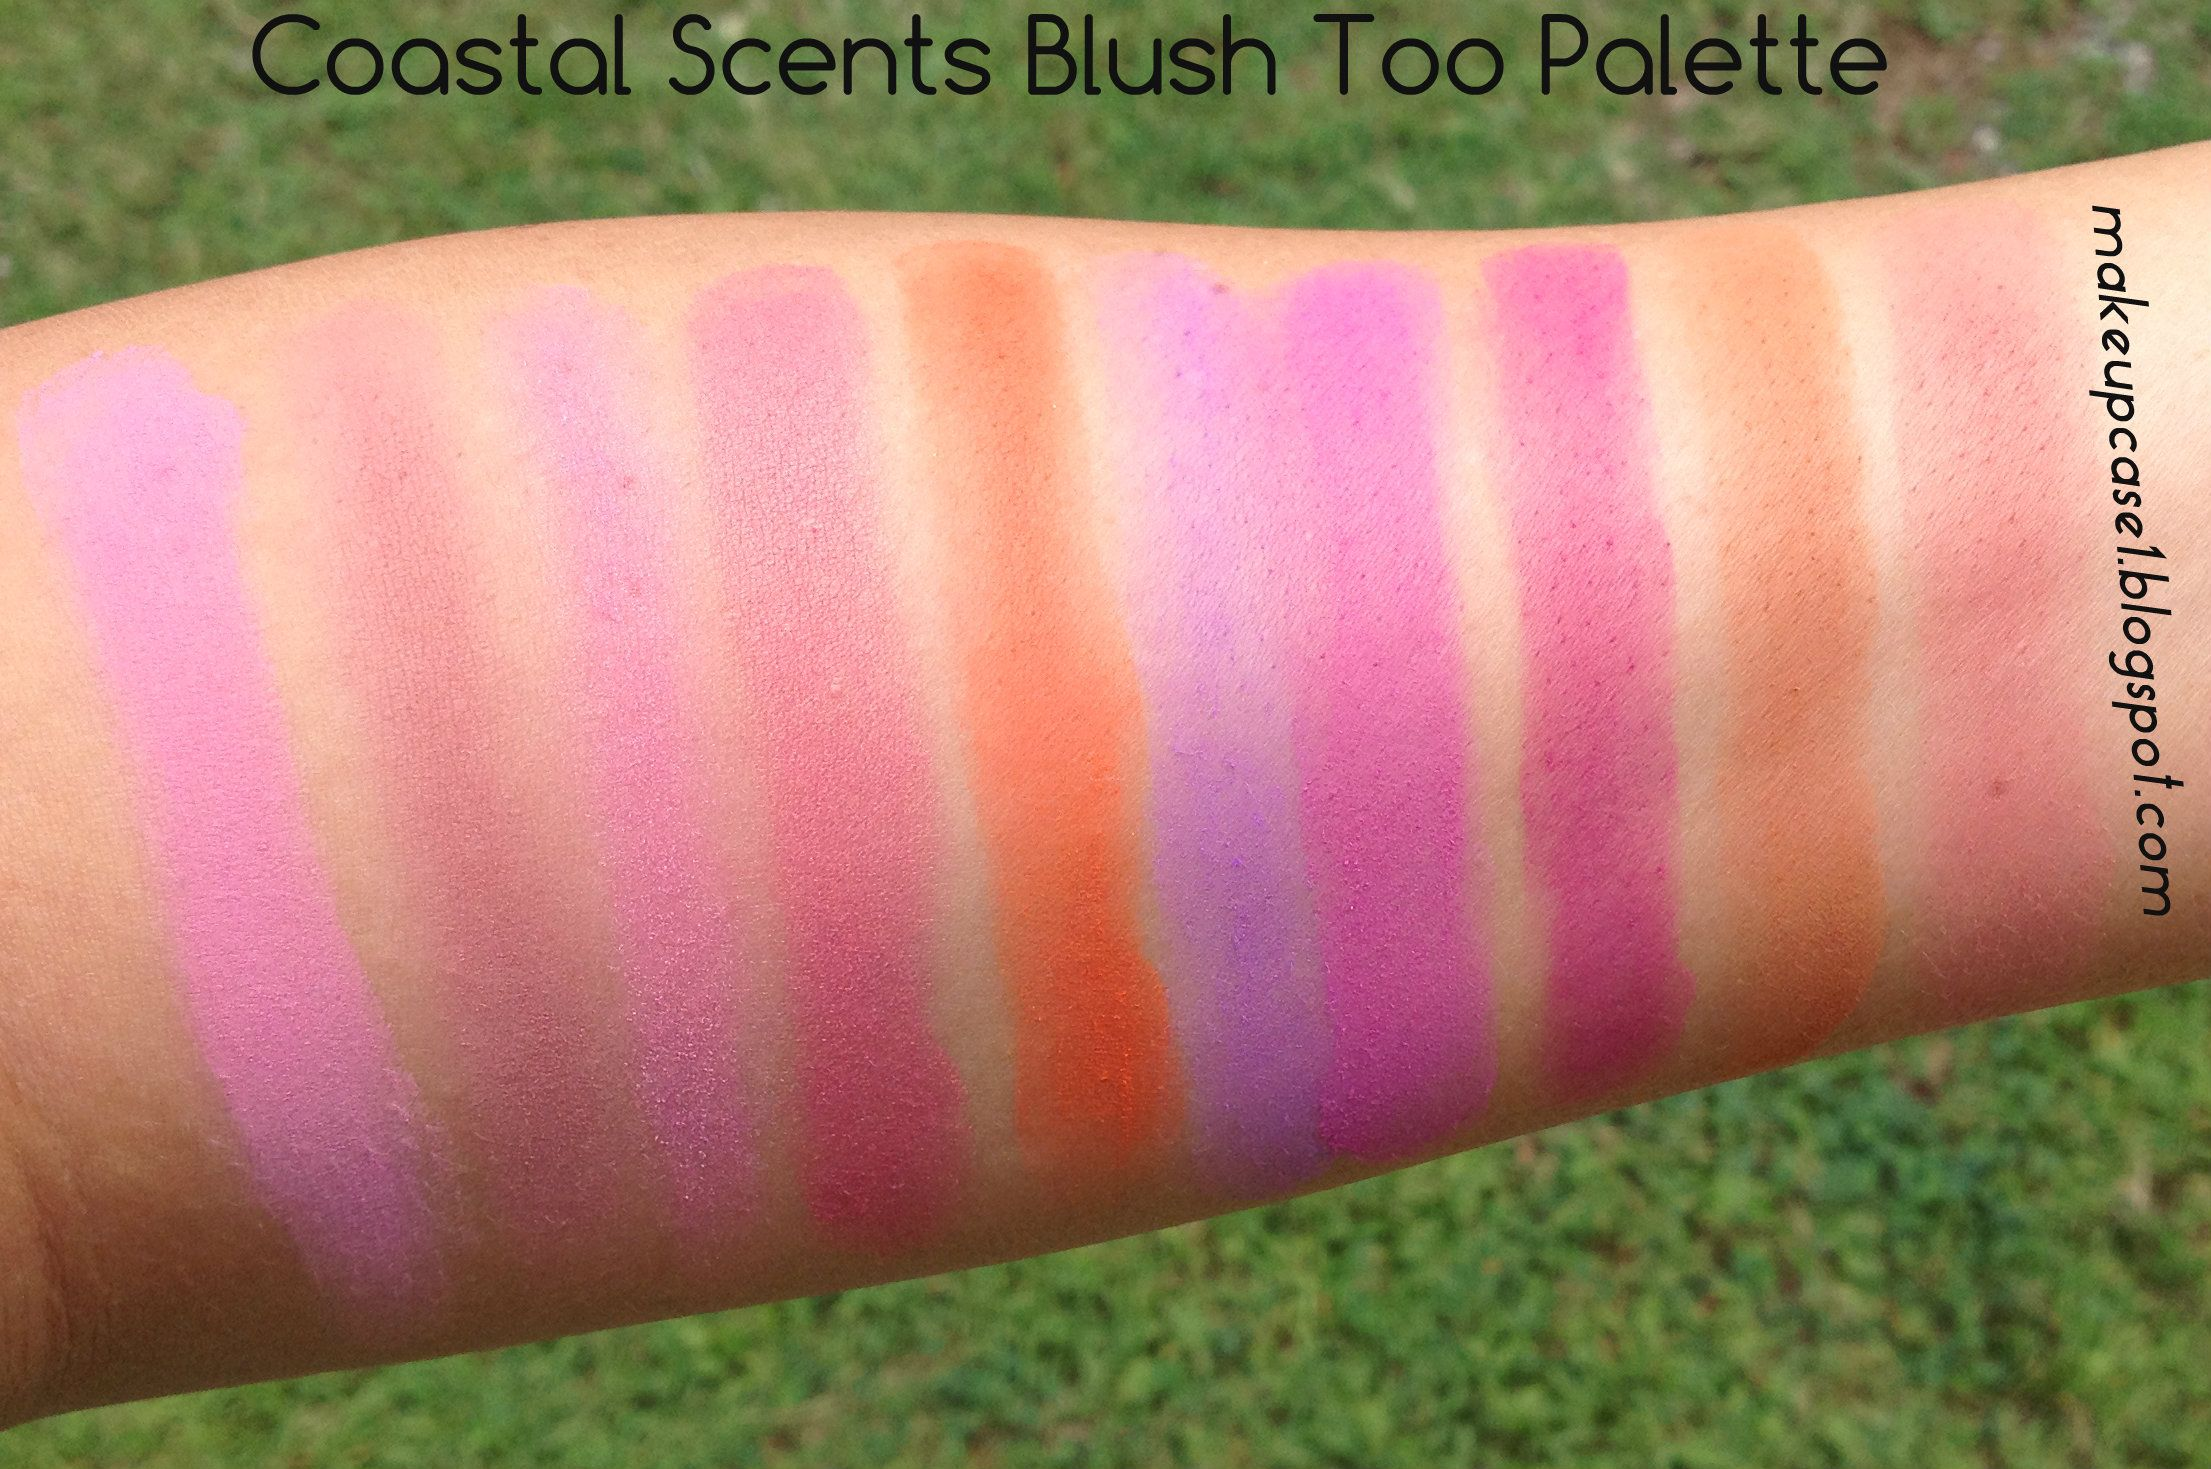 Coastal Scents Blush Too Palette Swatches All Things Beauty Revlon Ultra Hd Lipstick No840 Pointsettia Makeup Dupes